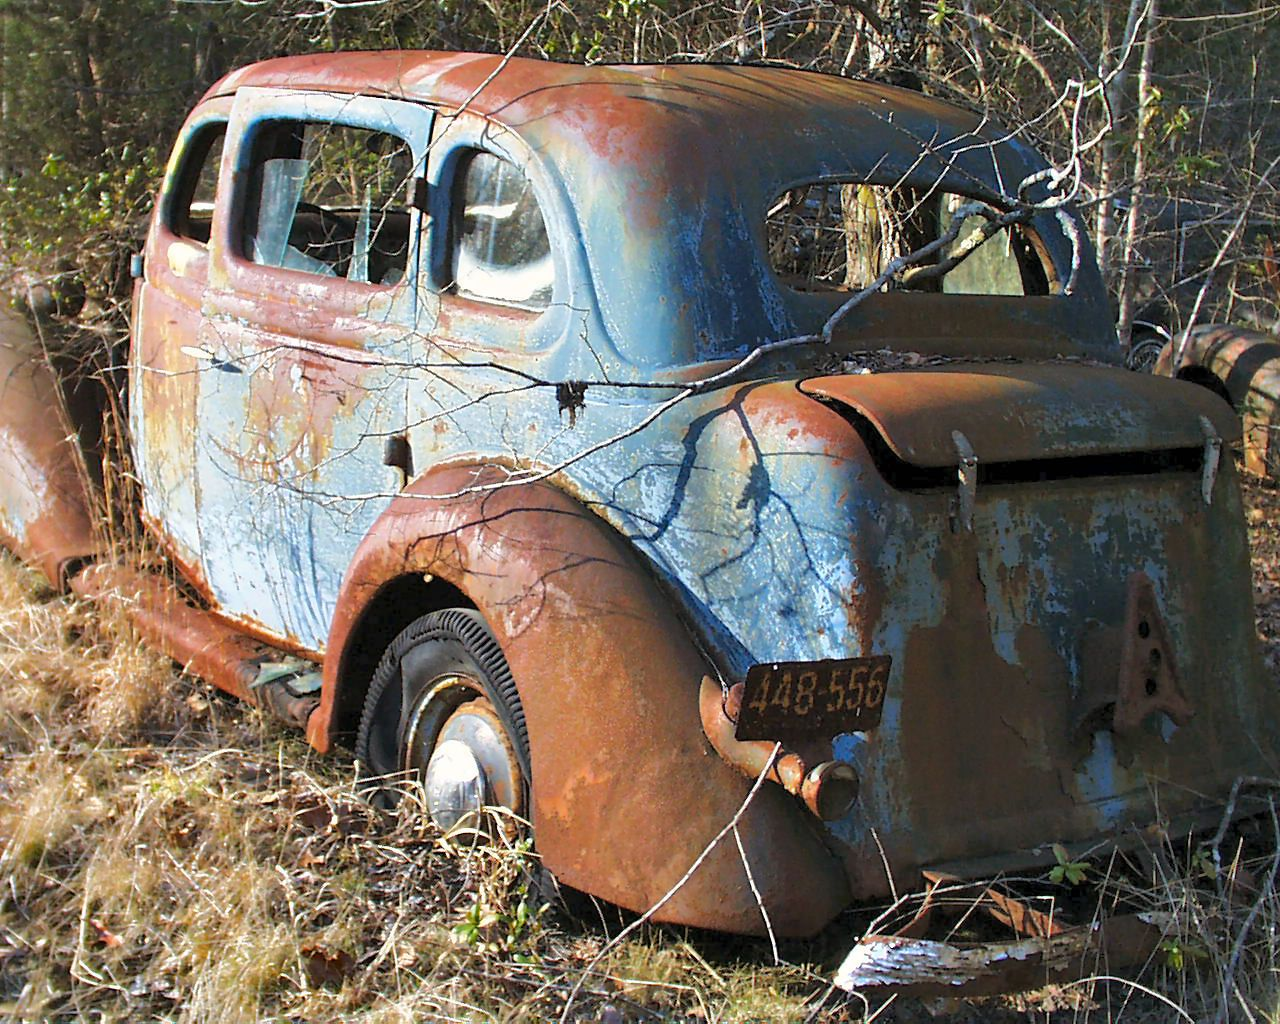 junk yards Google Search Abandoned cars, Rusty cars